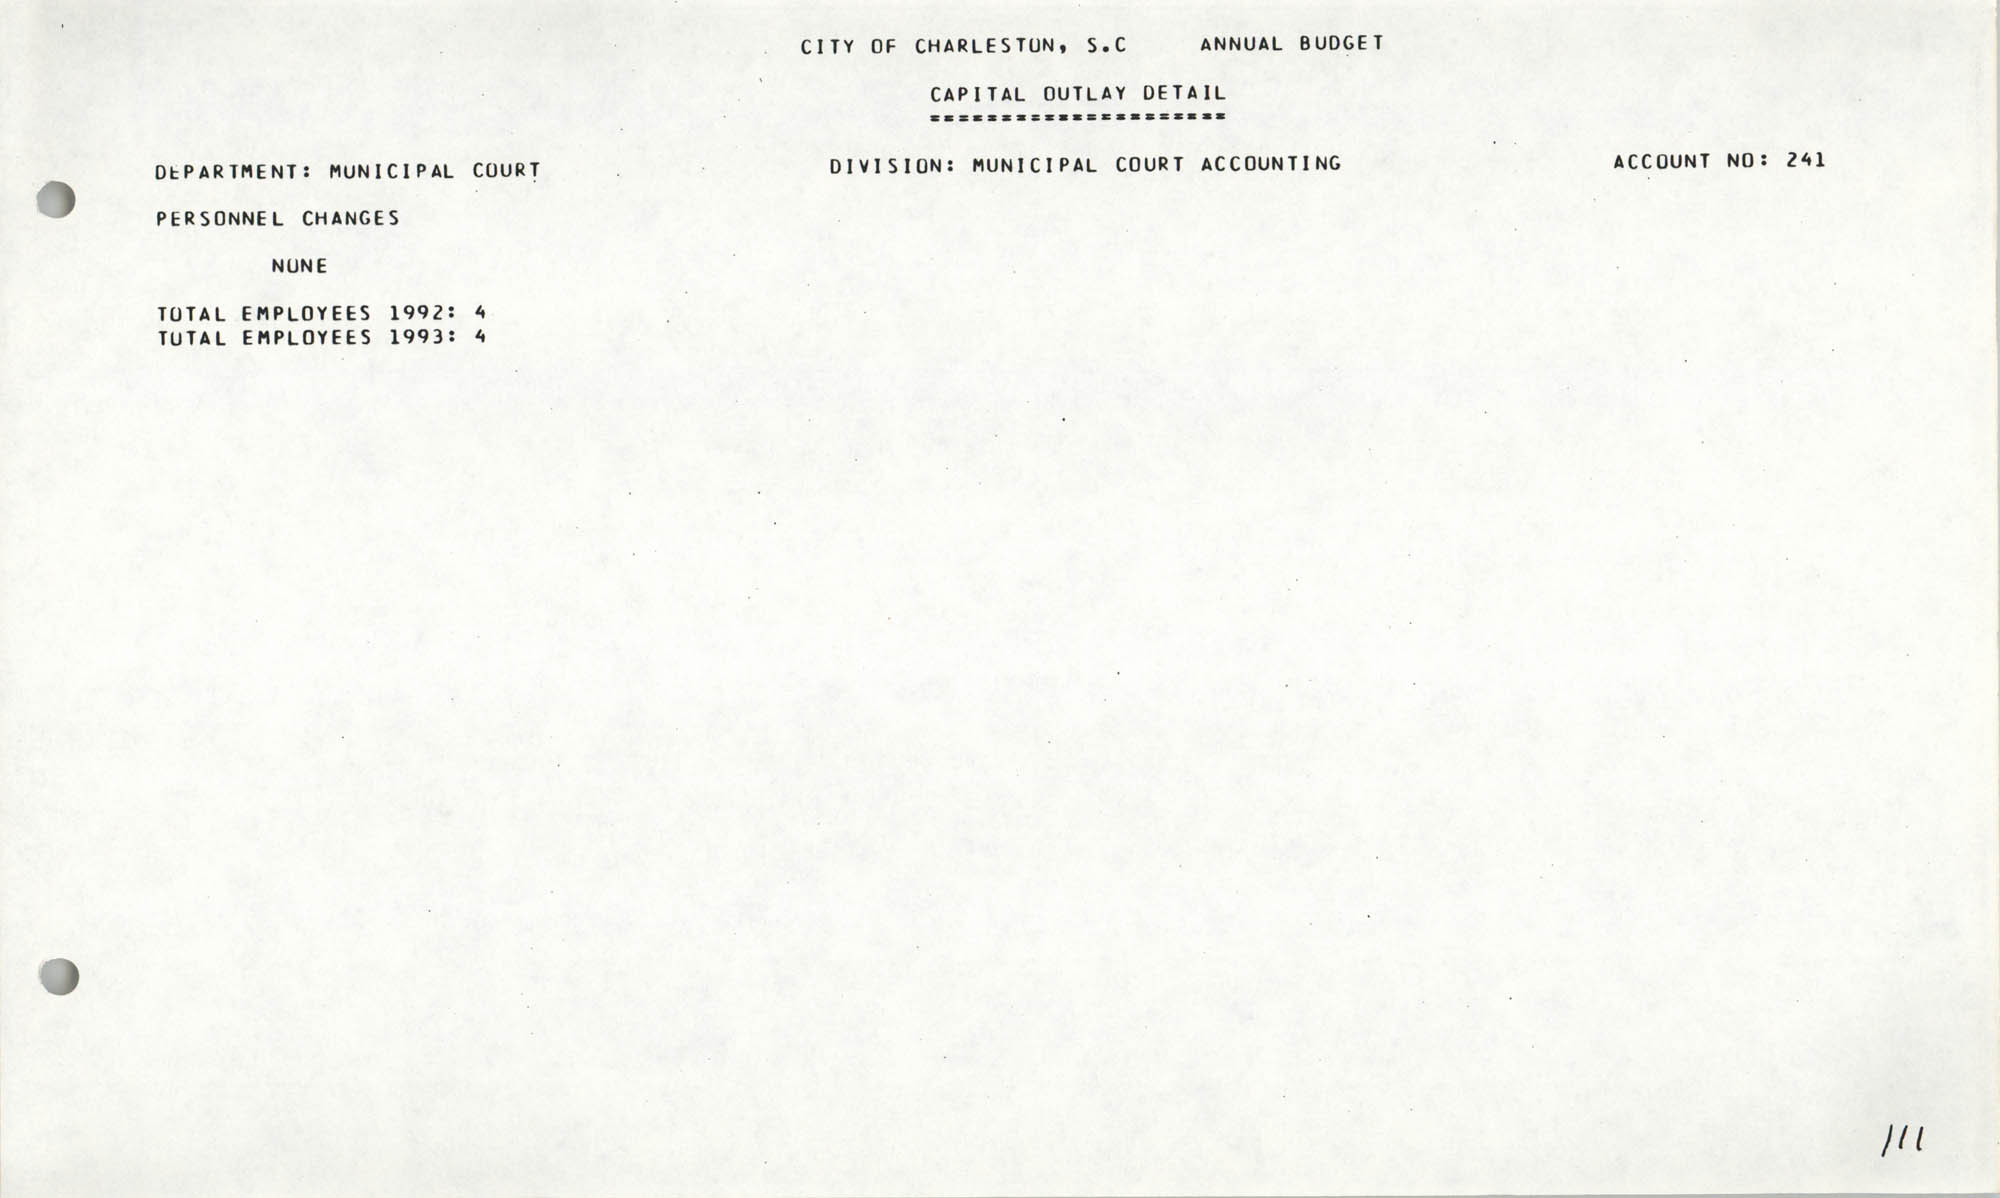 The City Council of Charleston, South Carolina, 1993 Budget, Page 111